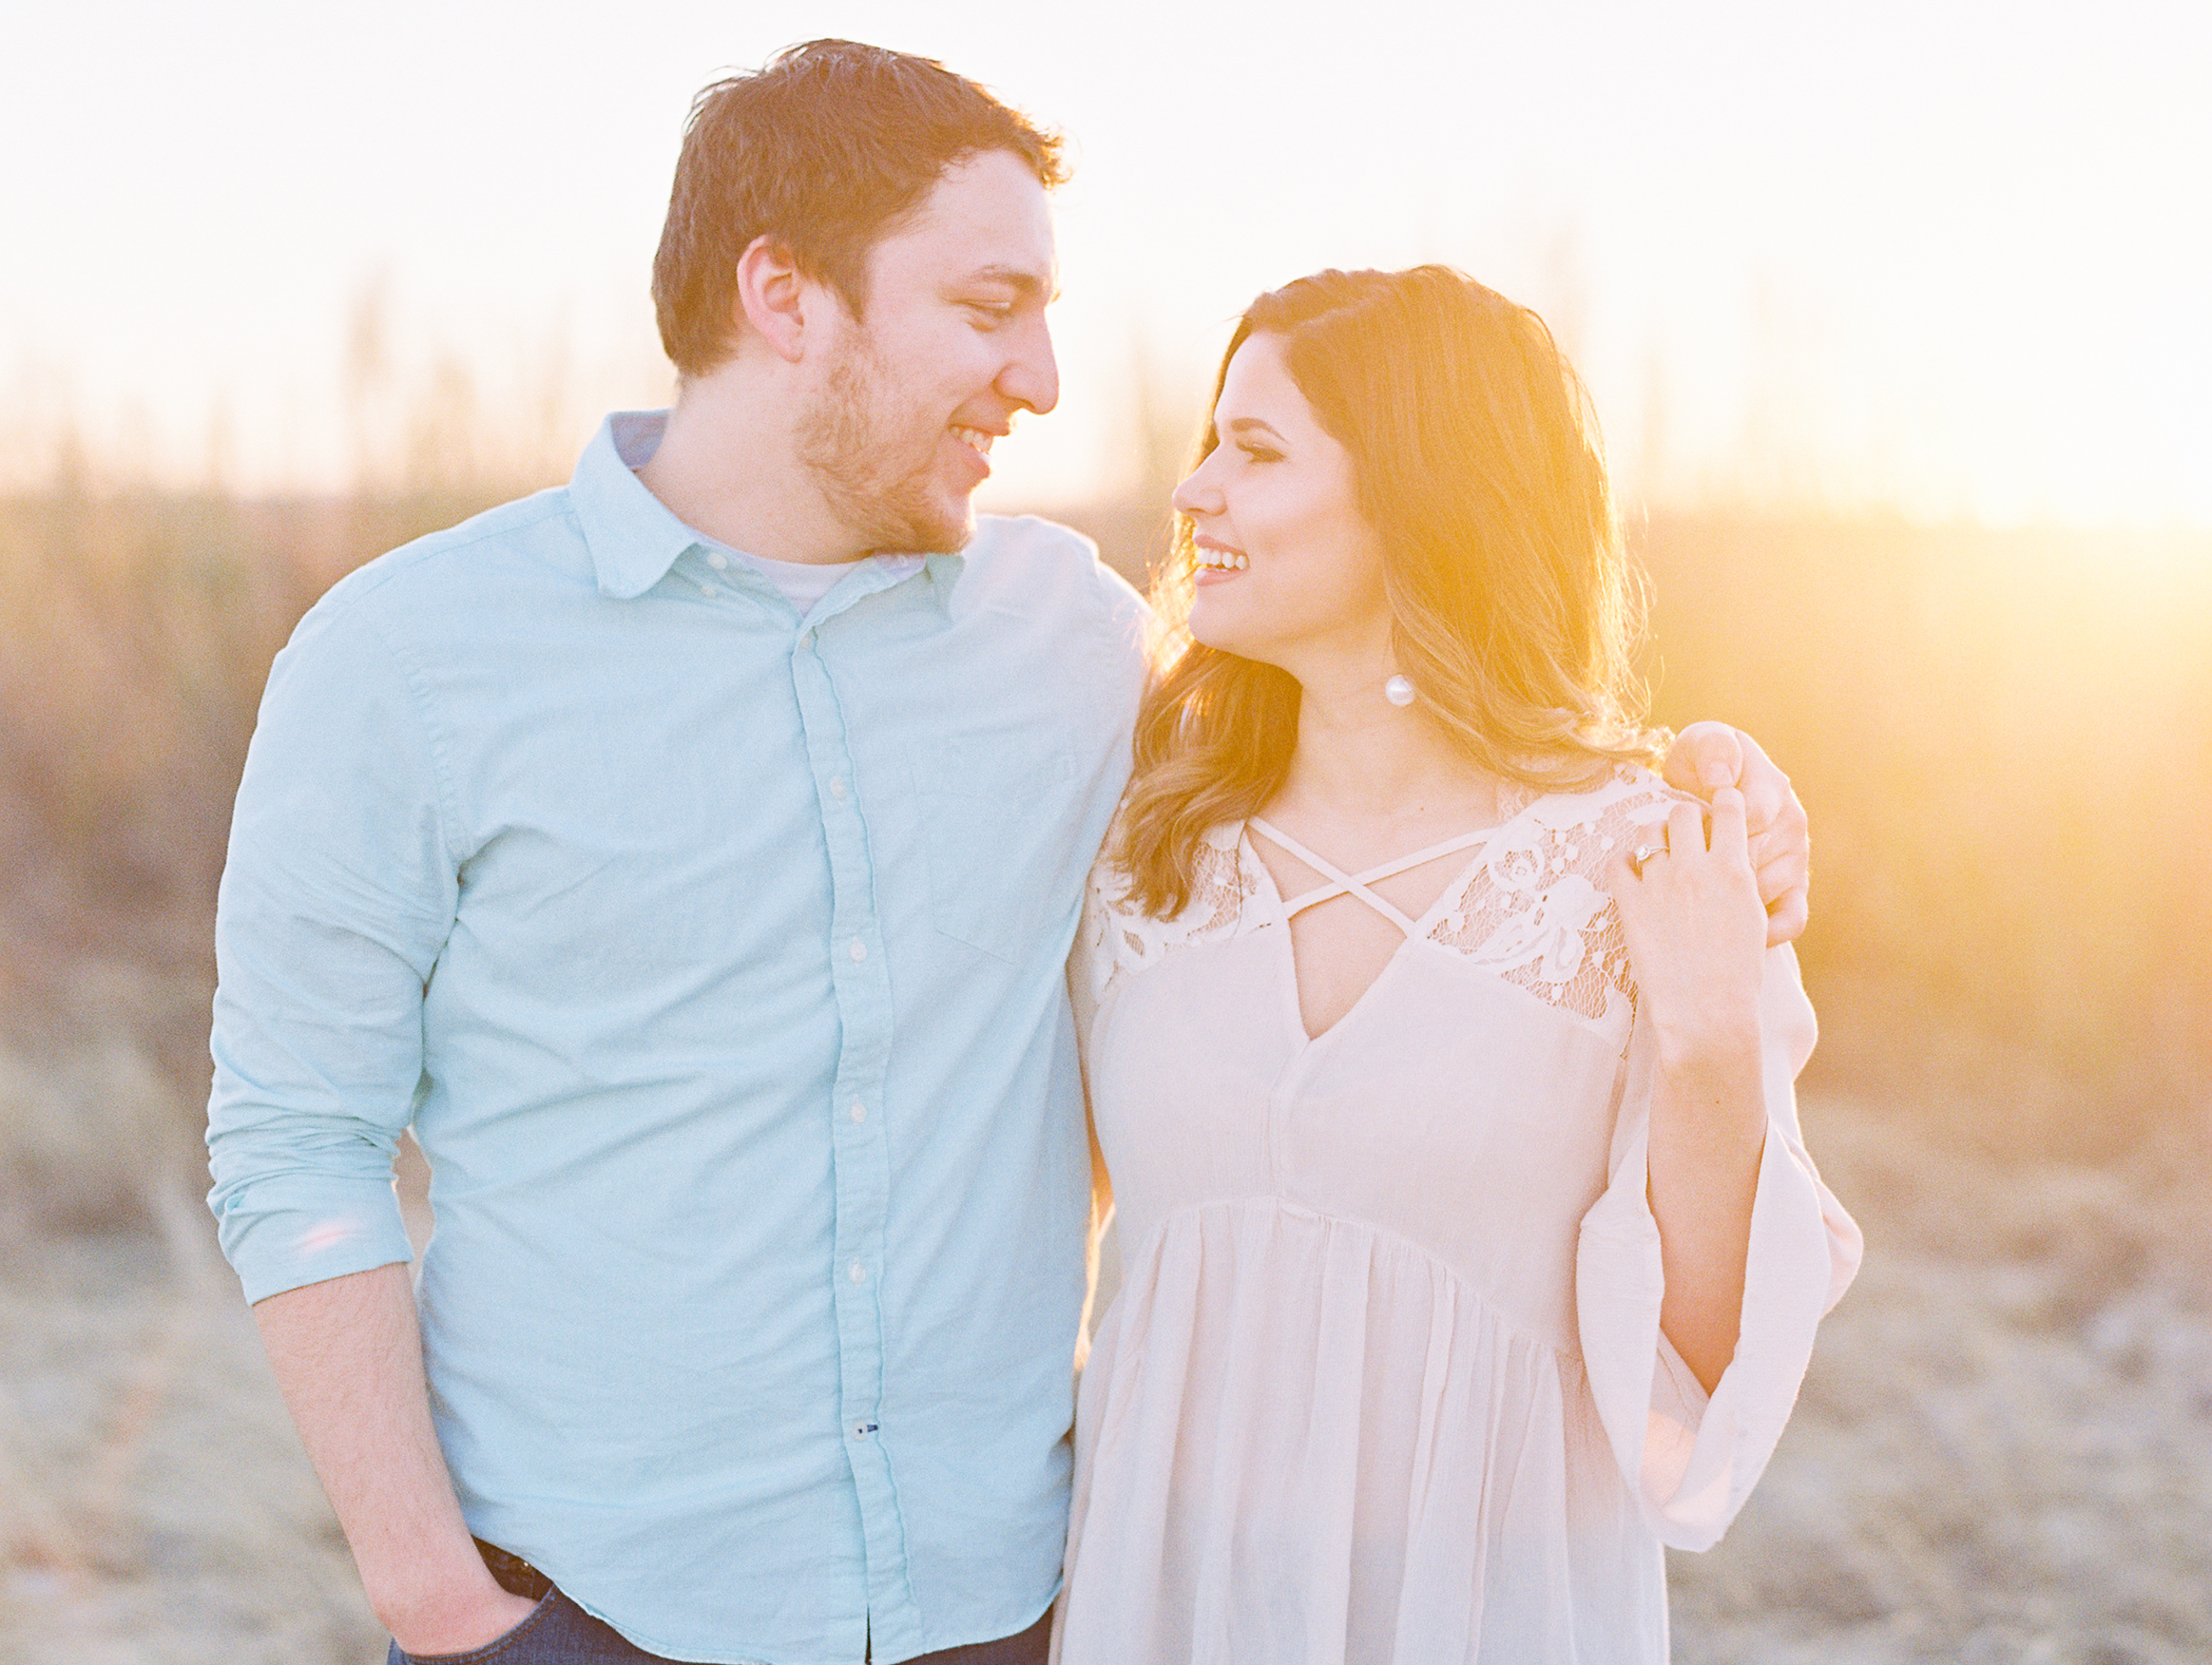 Daven & Meg | West Texas Engagement Session | Texas Wedding Photographer | Britni Dean Photography | britnidean.com